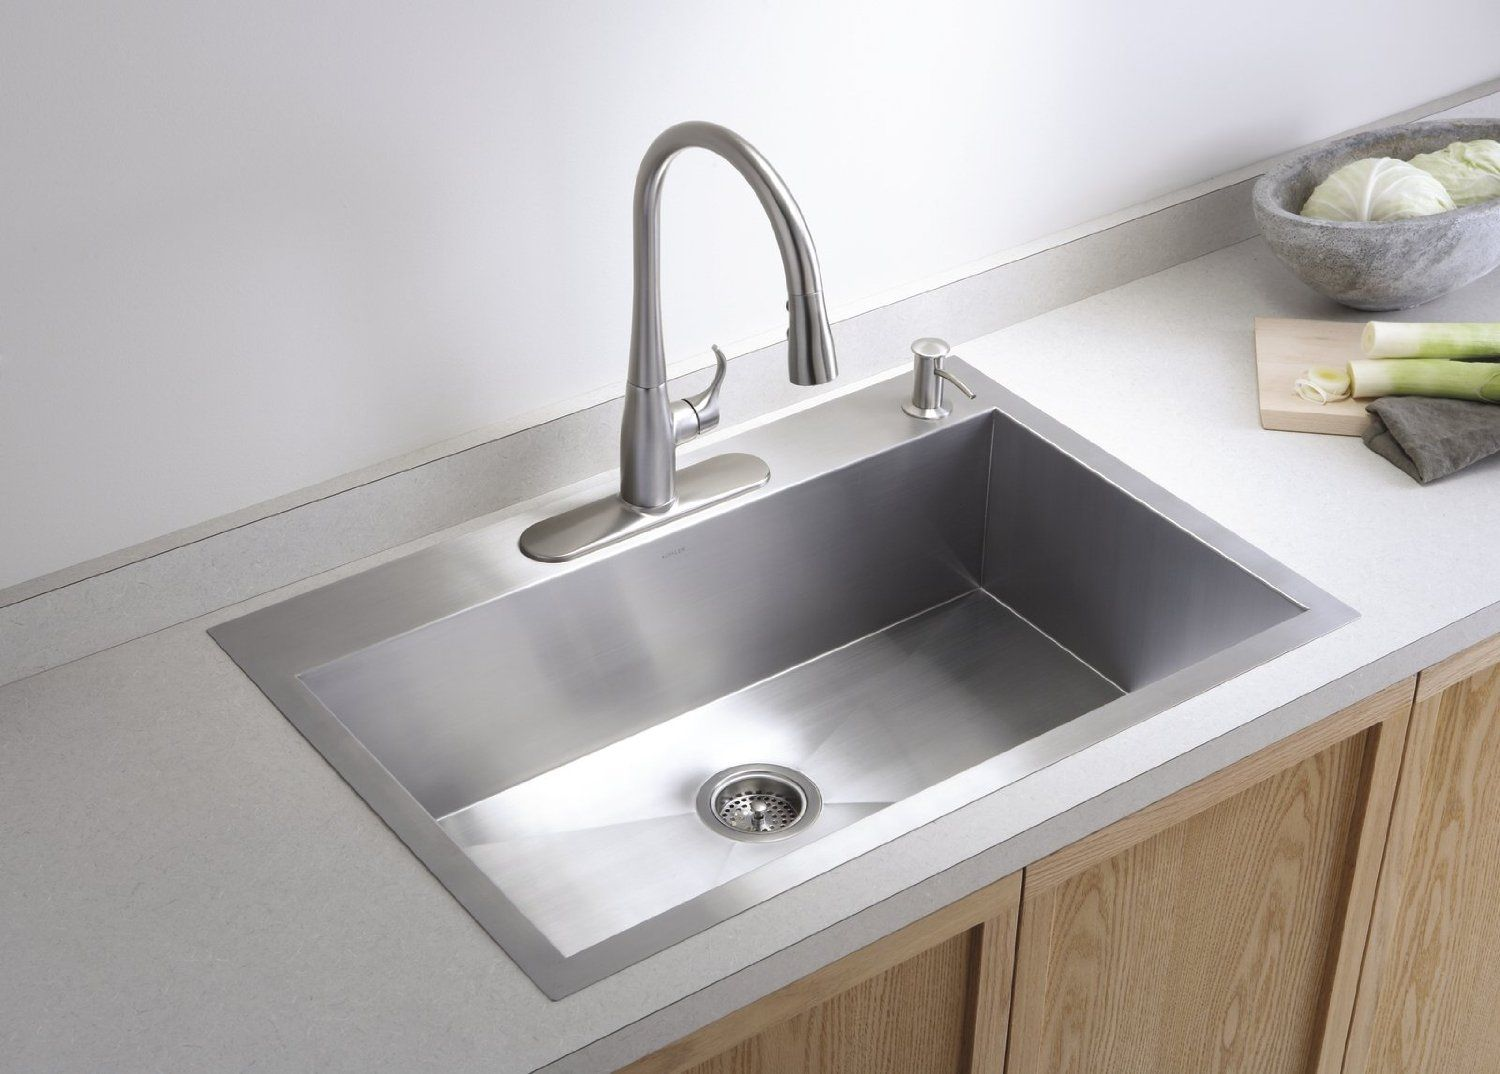 Kohler Vault Dual Mount 25 In Built With Stainless Steel For Added Toughness This Large Single Basin Sink Will Complement Your Kitchen Decor